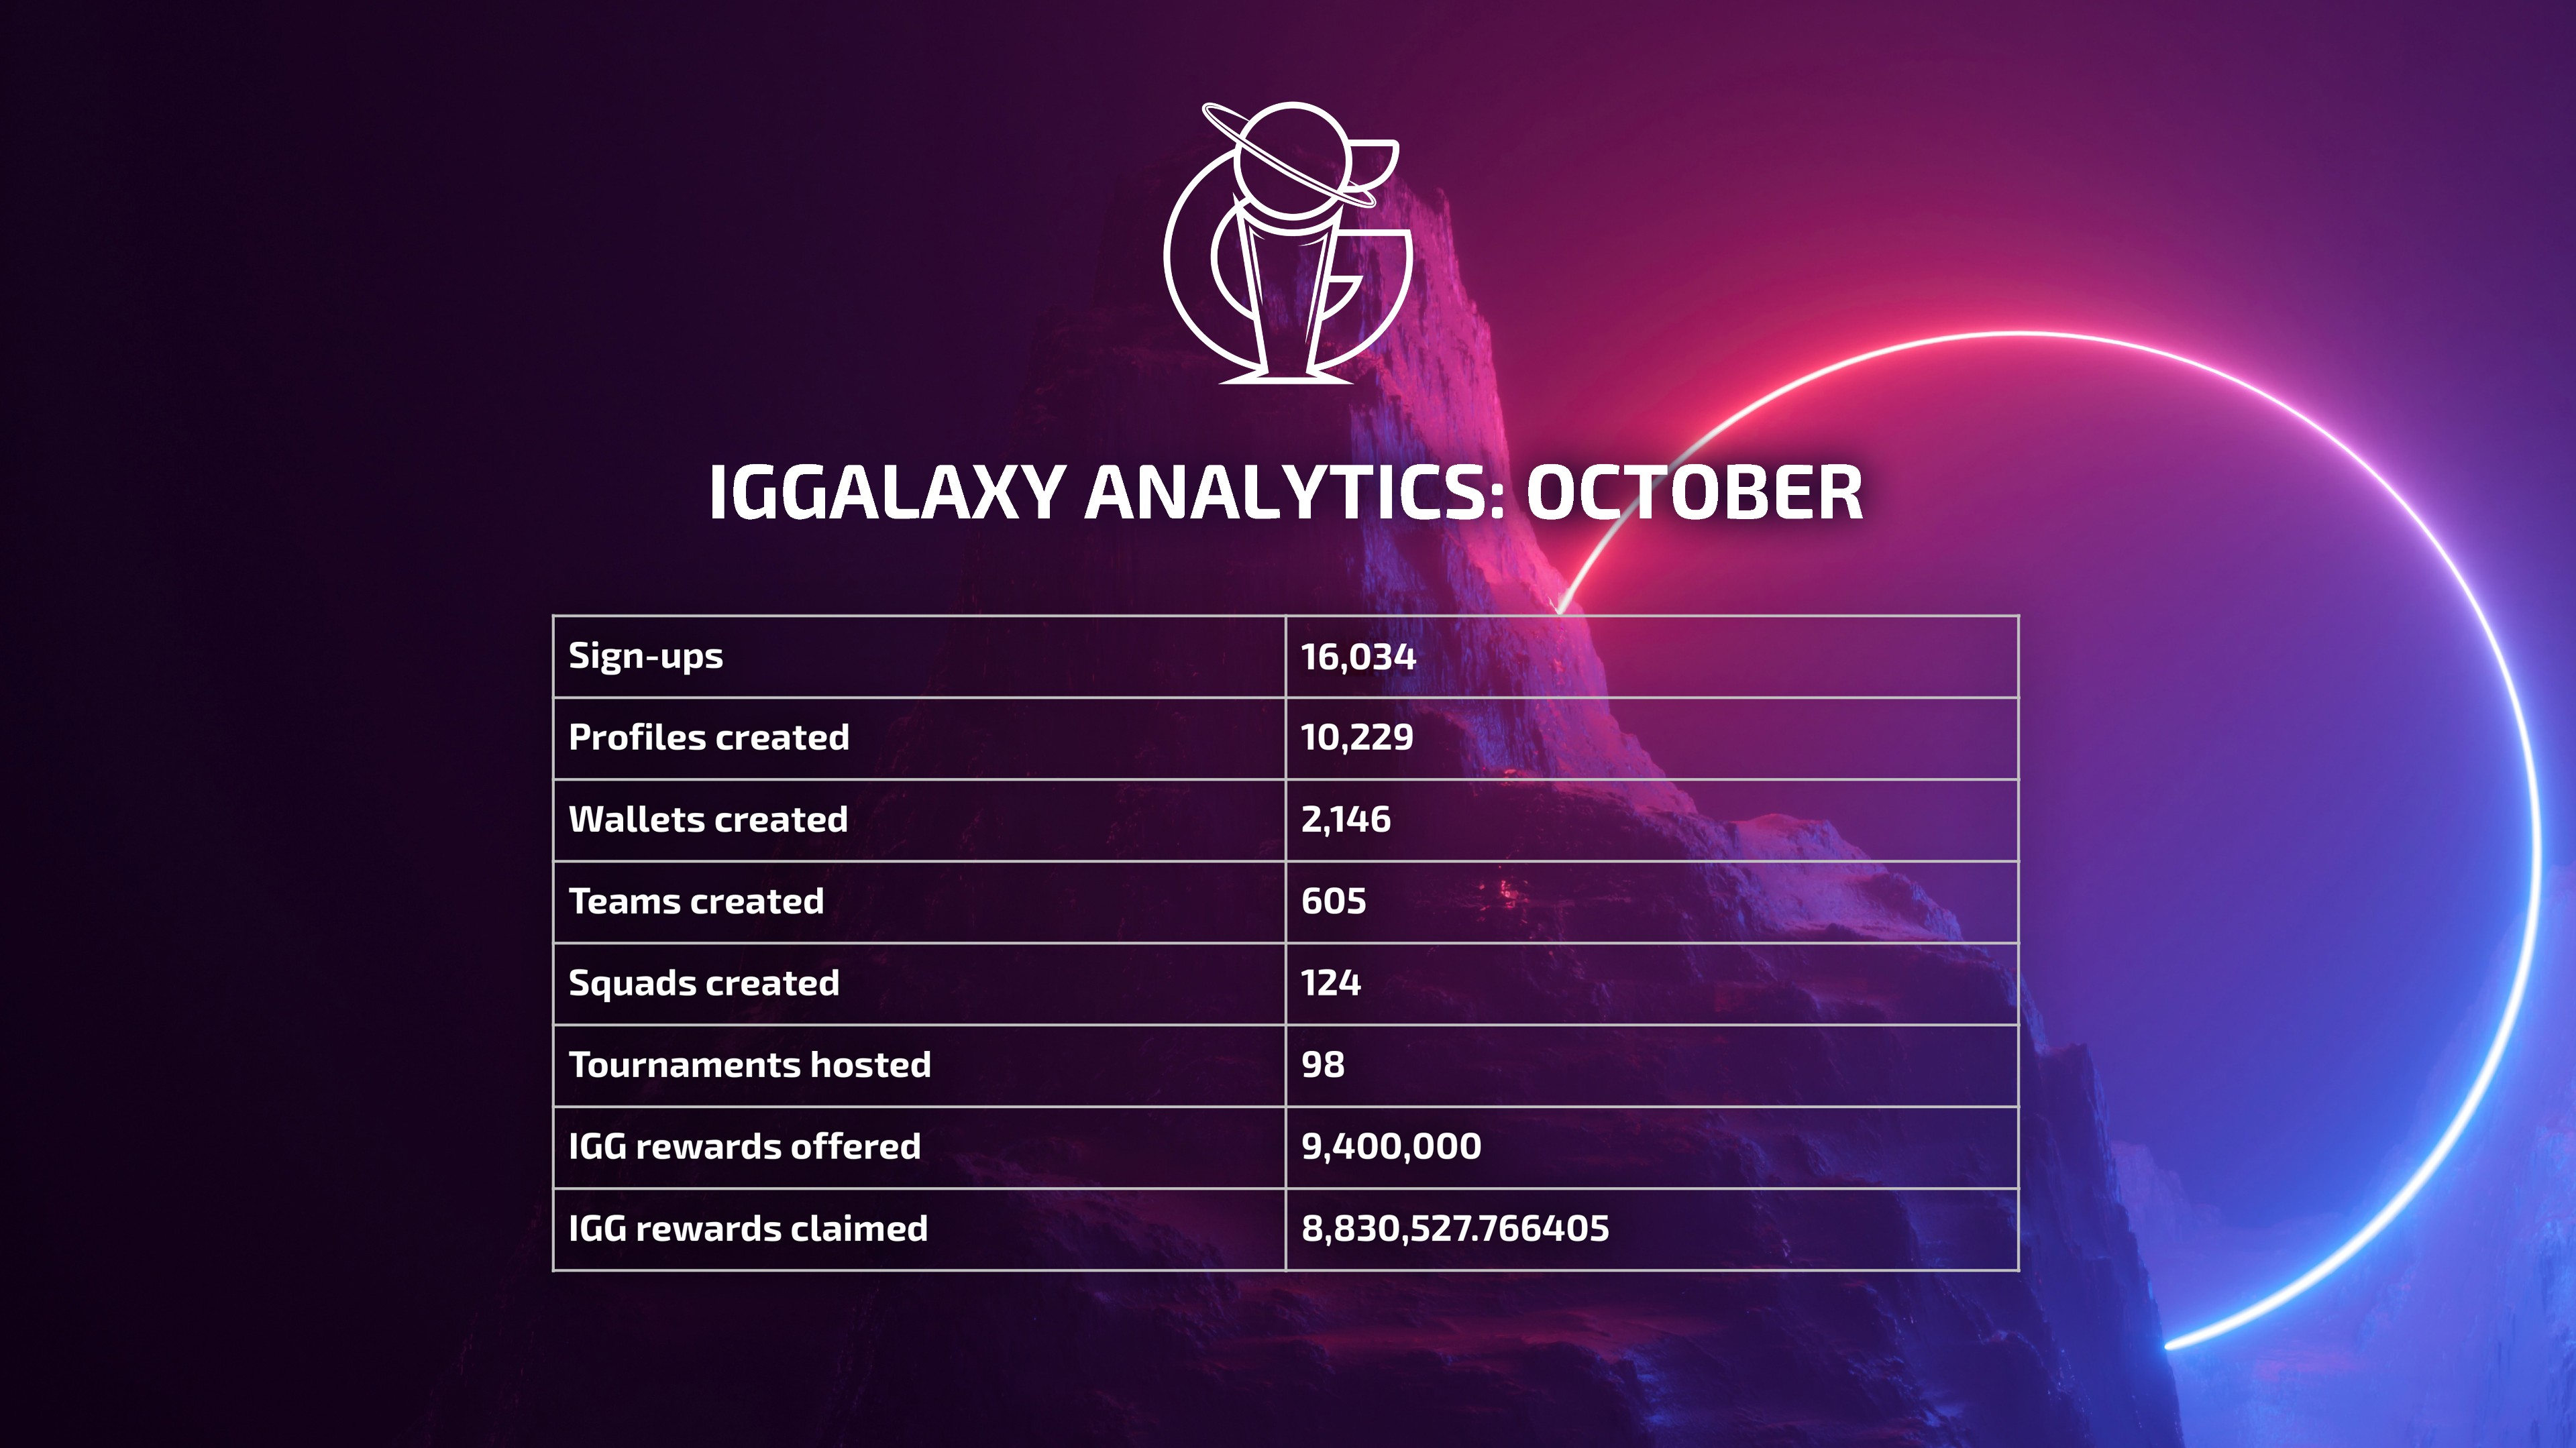 CAPTION: IGGalaxy analytics: October 2020.